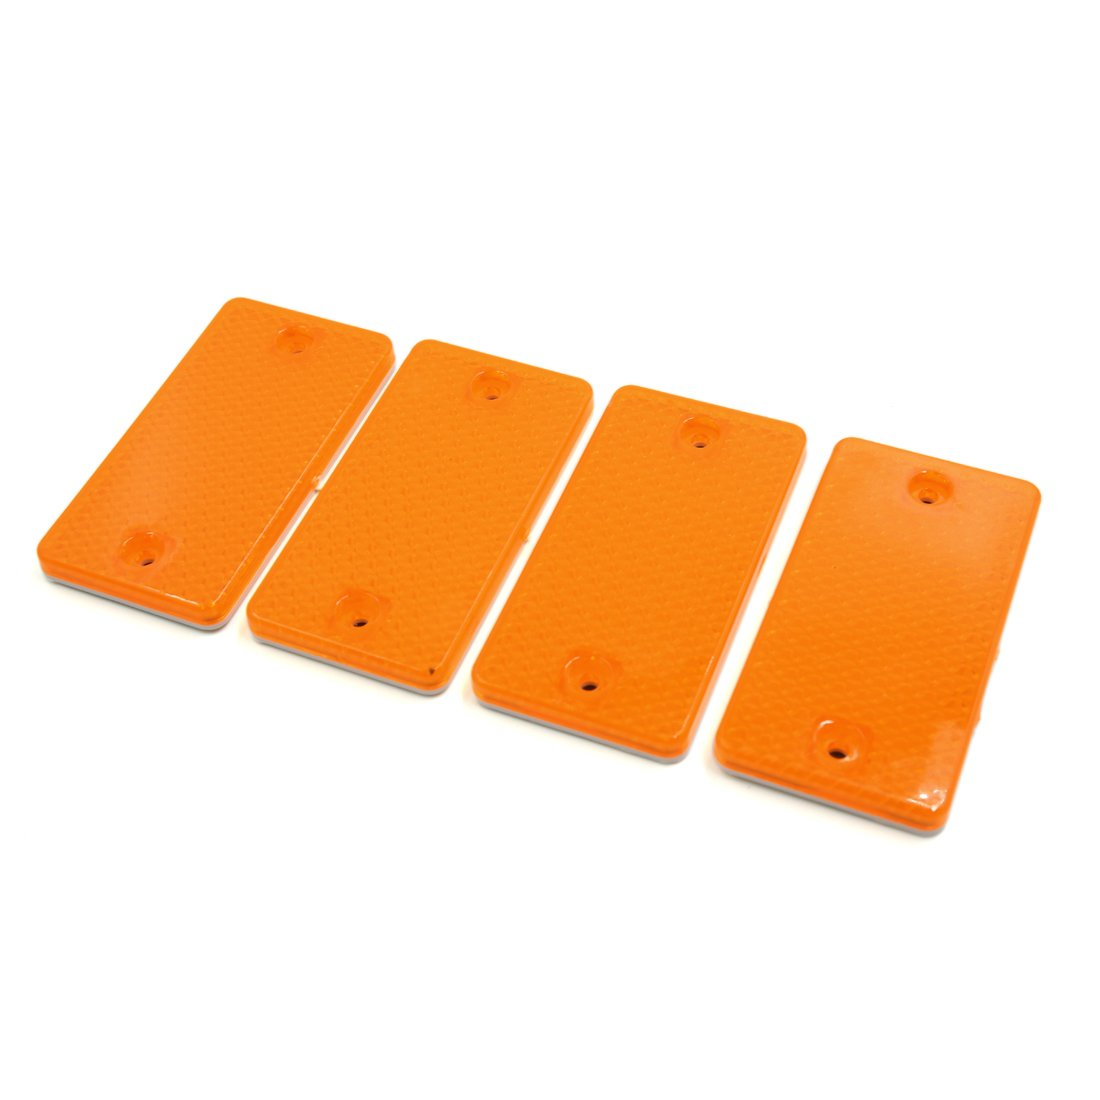 uxcell 4pcs Yellow Plastic Automobile Car Reflector Reflective Plate Sticker 9 x 4.5cm a18020100ux0218